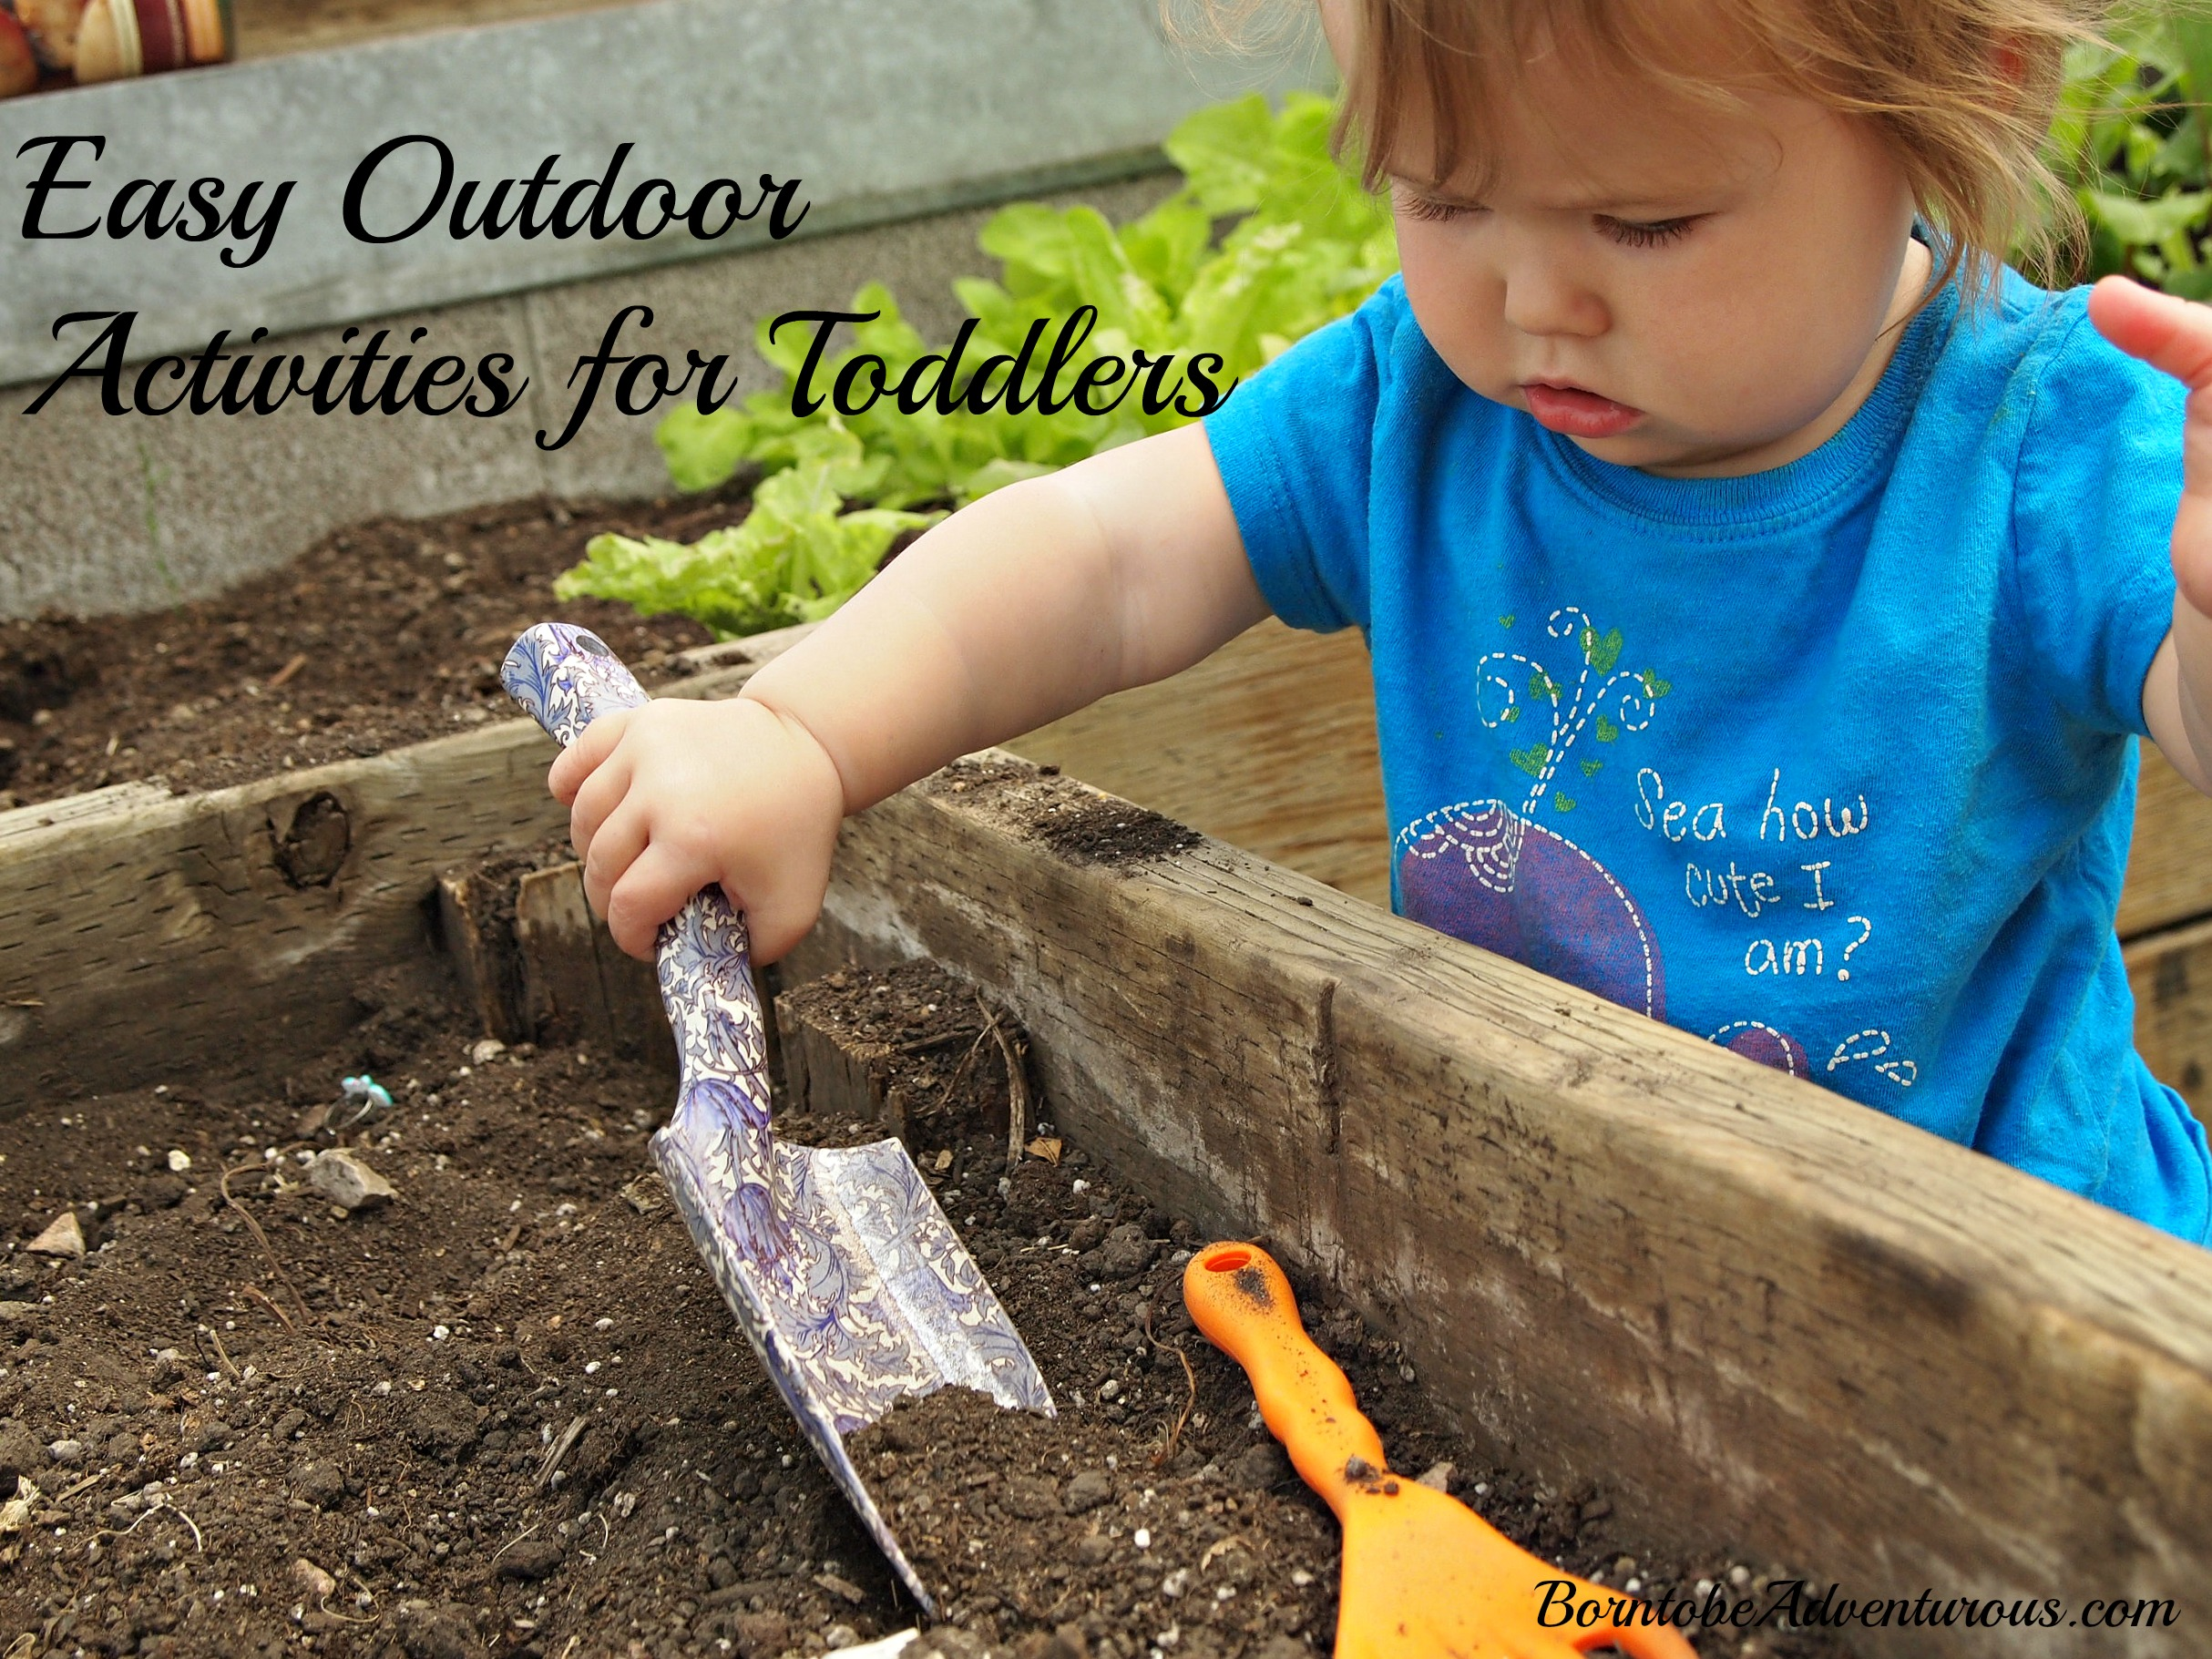 Easy Outdoor Activities for Toddlers